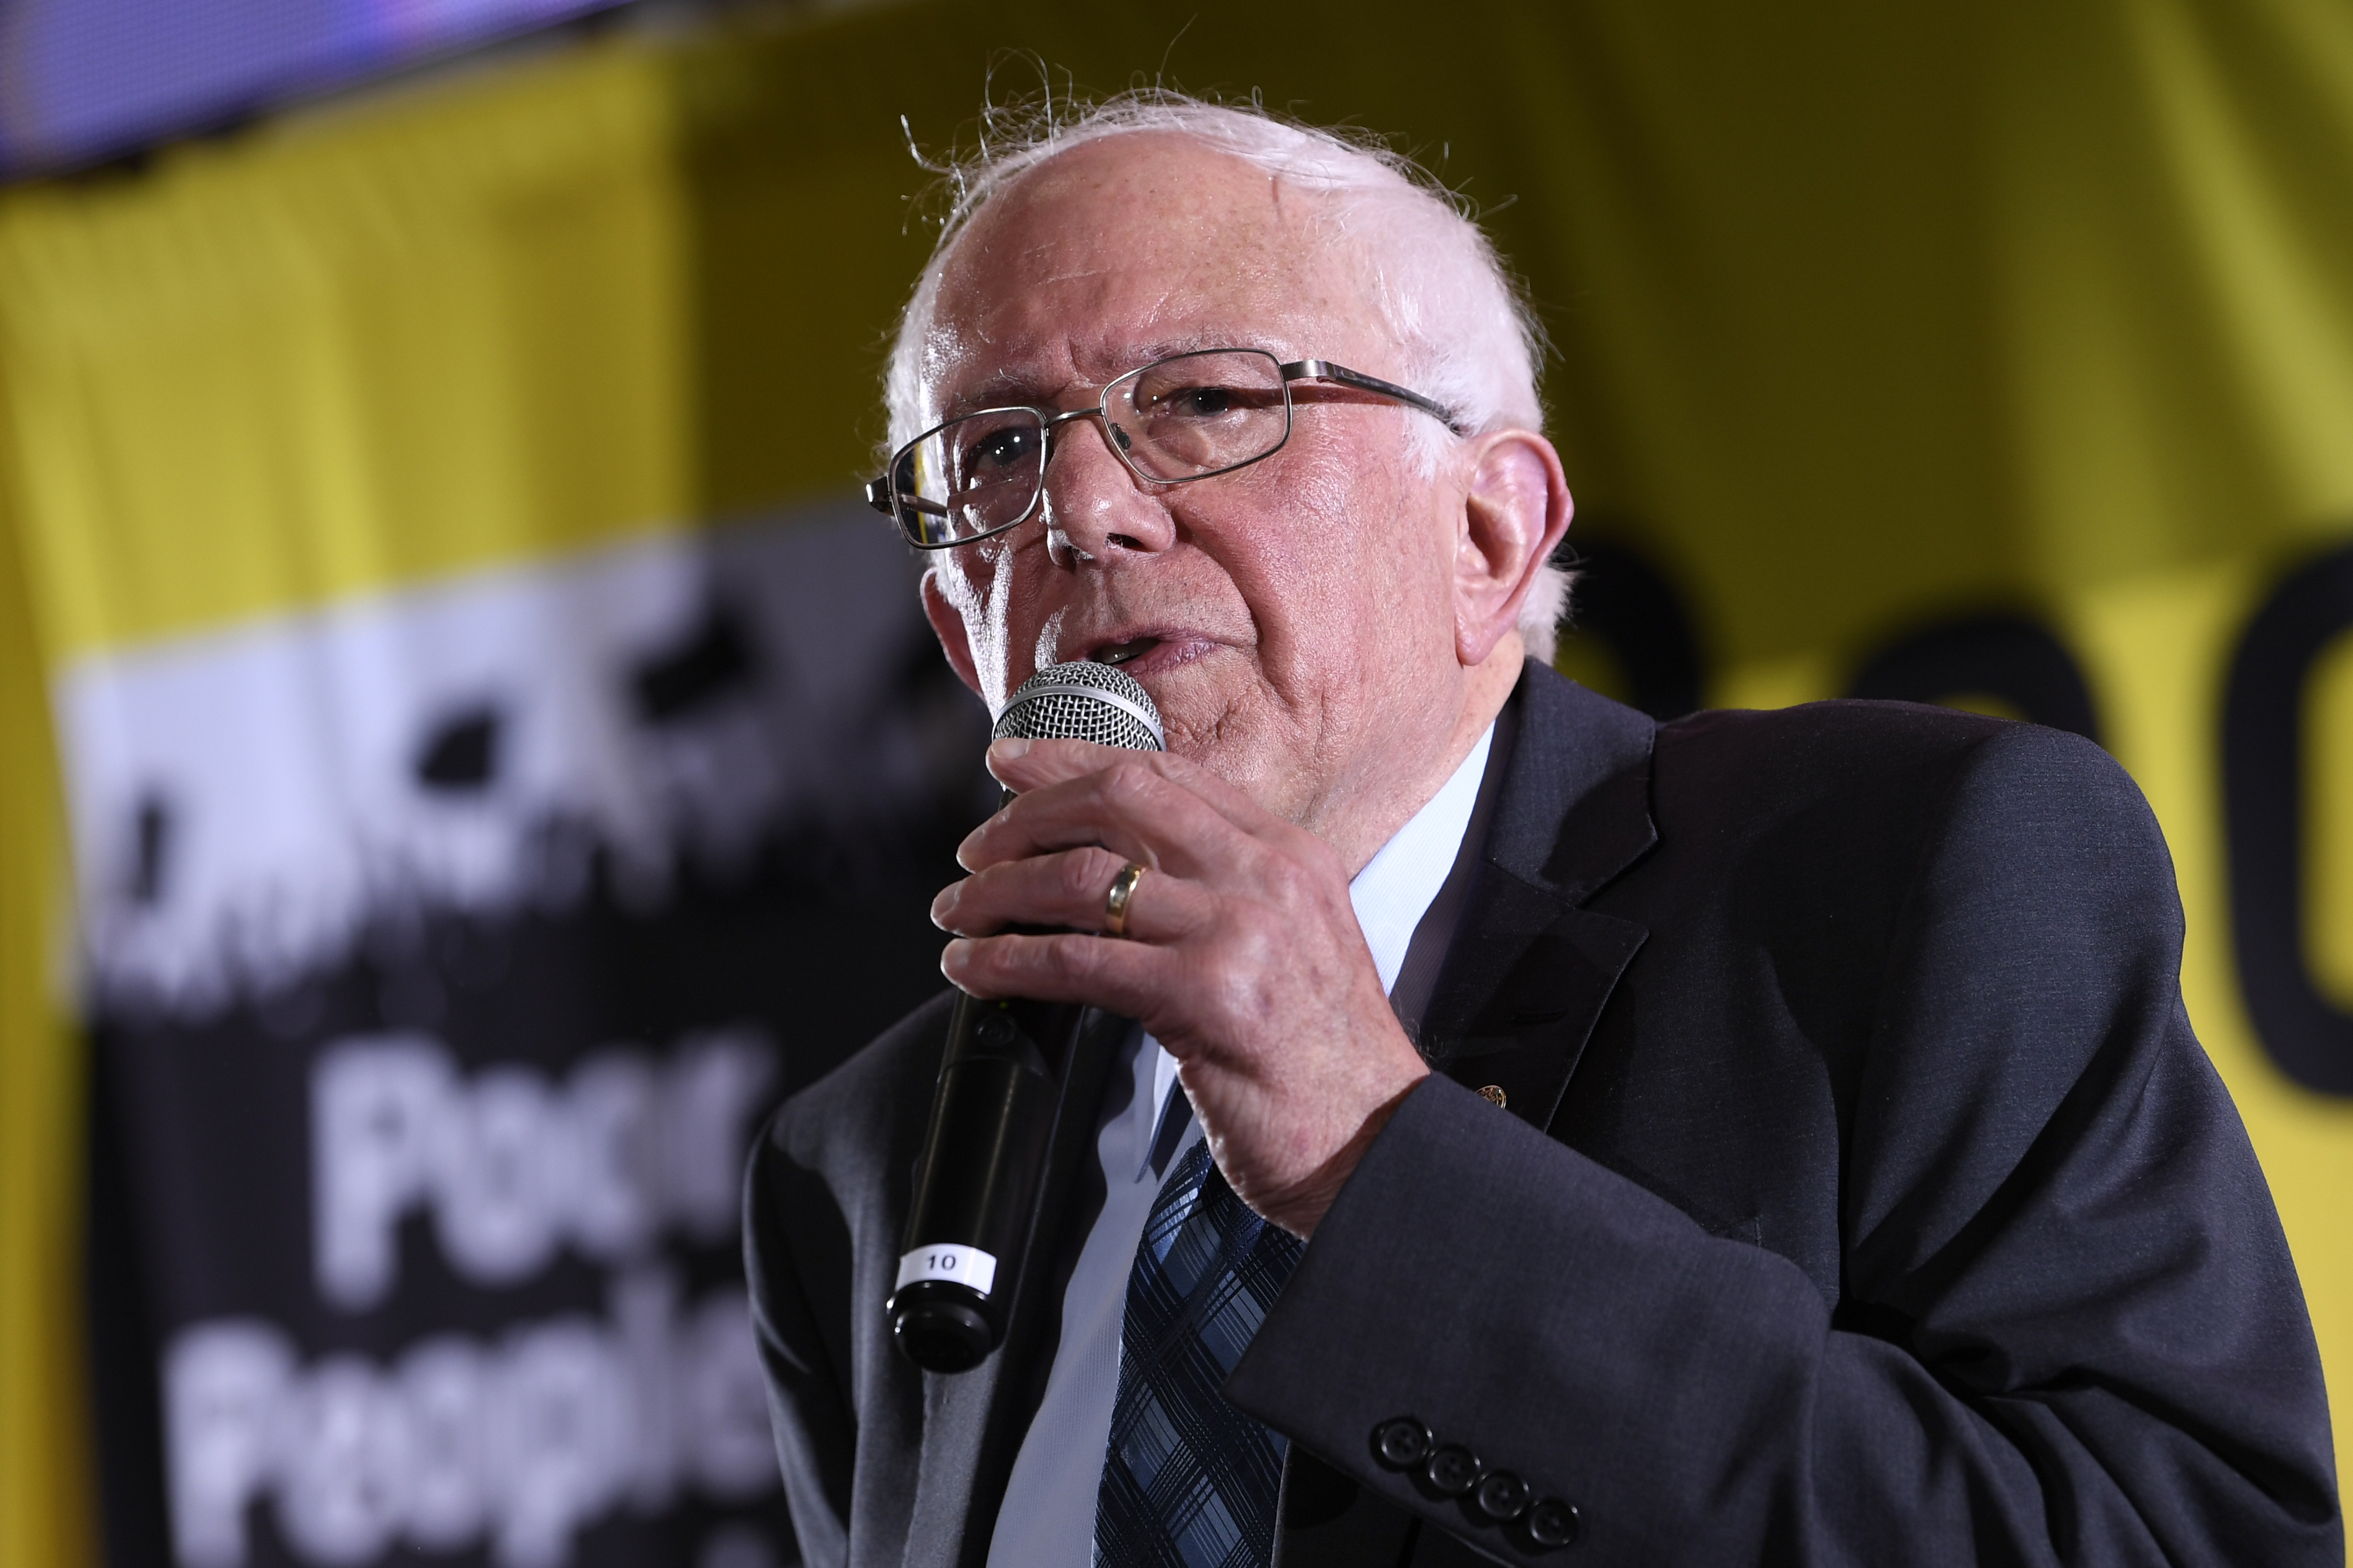 Democratic presidential candidate Sen. Bernie Sanders, I-Vt., speaks at the Poor People's Moral Action Congress presidential forum in Washington on June 17, 2019.